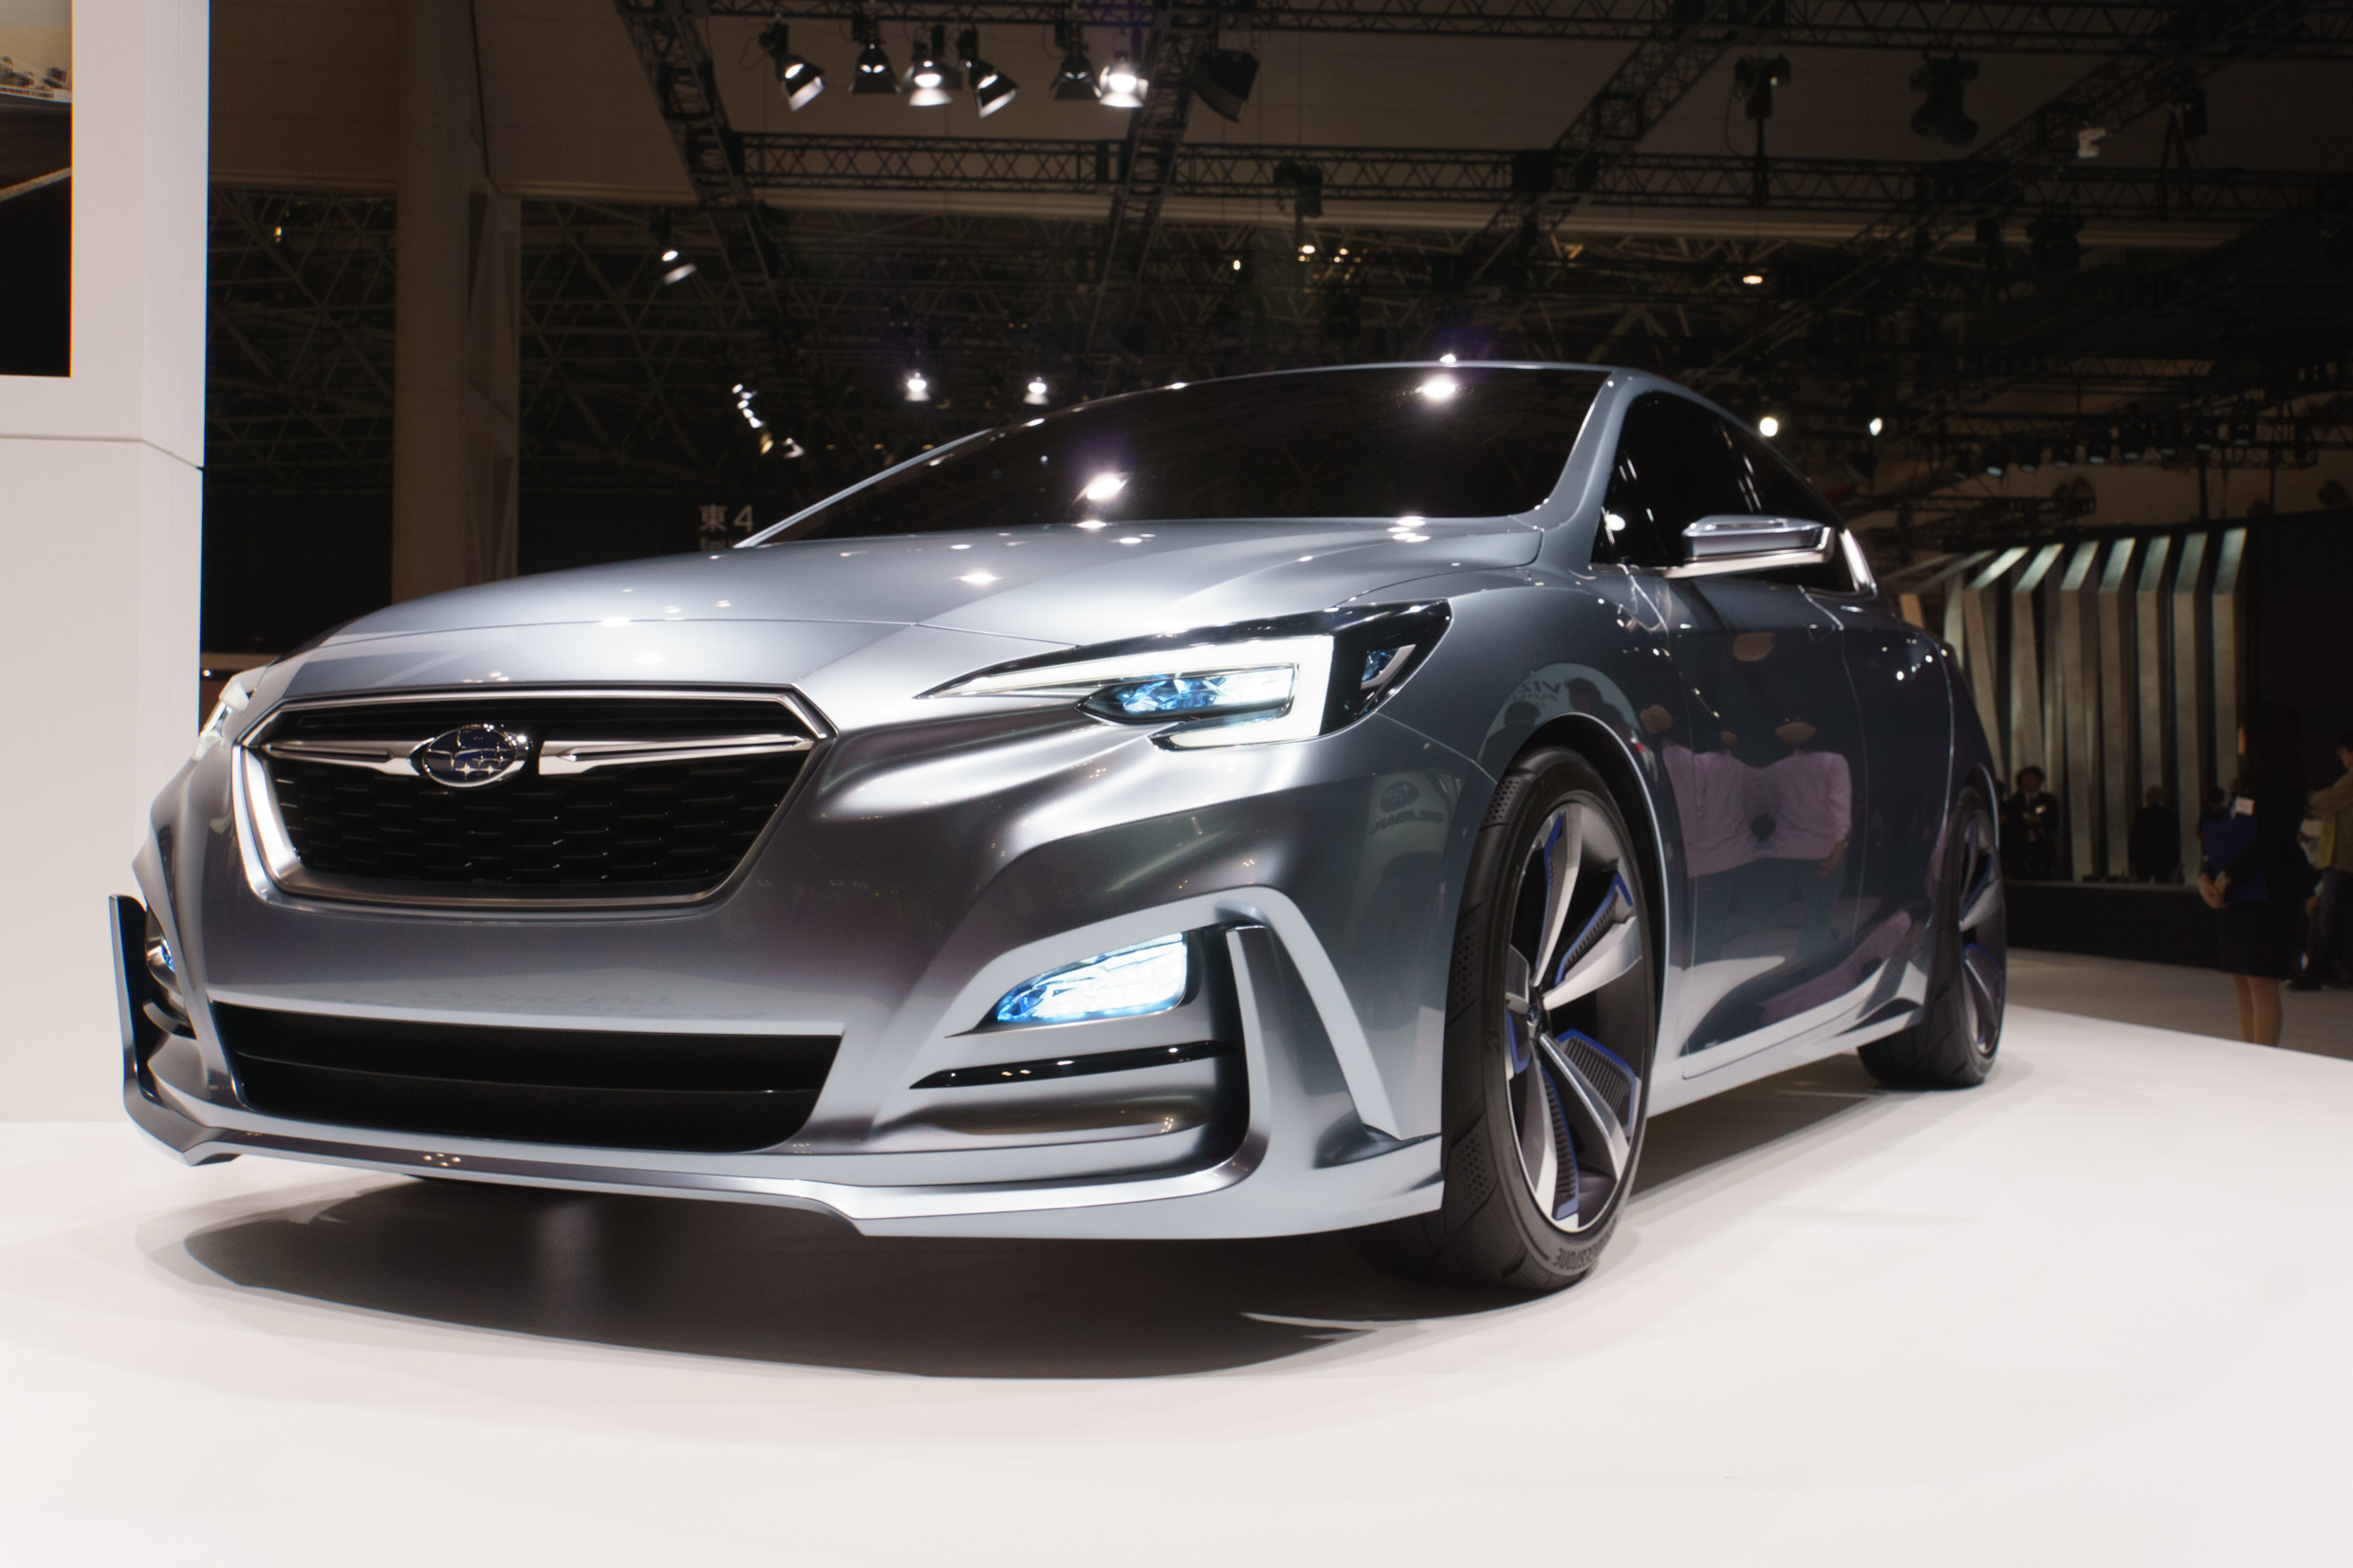 subaru-impreza-5-door-concept-7-of-15.jpg